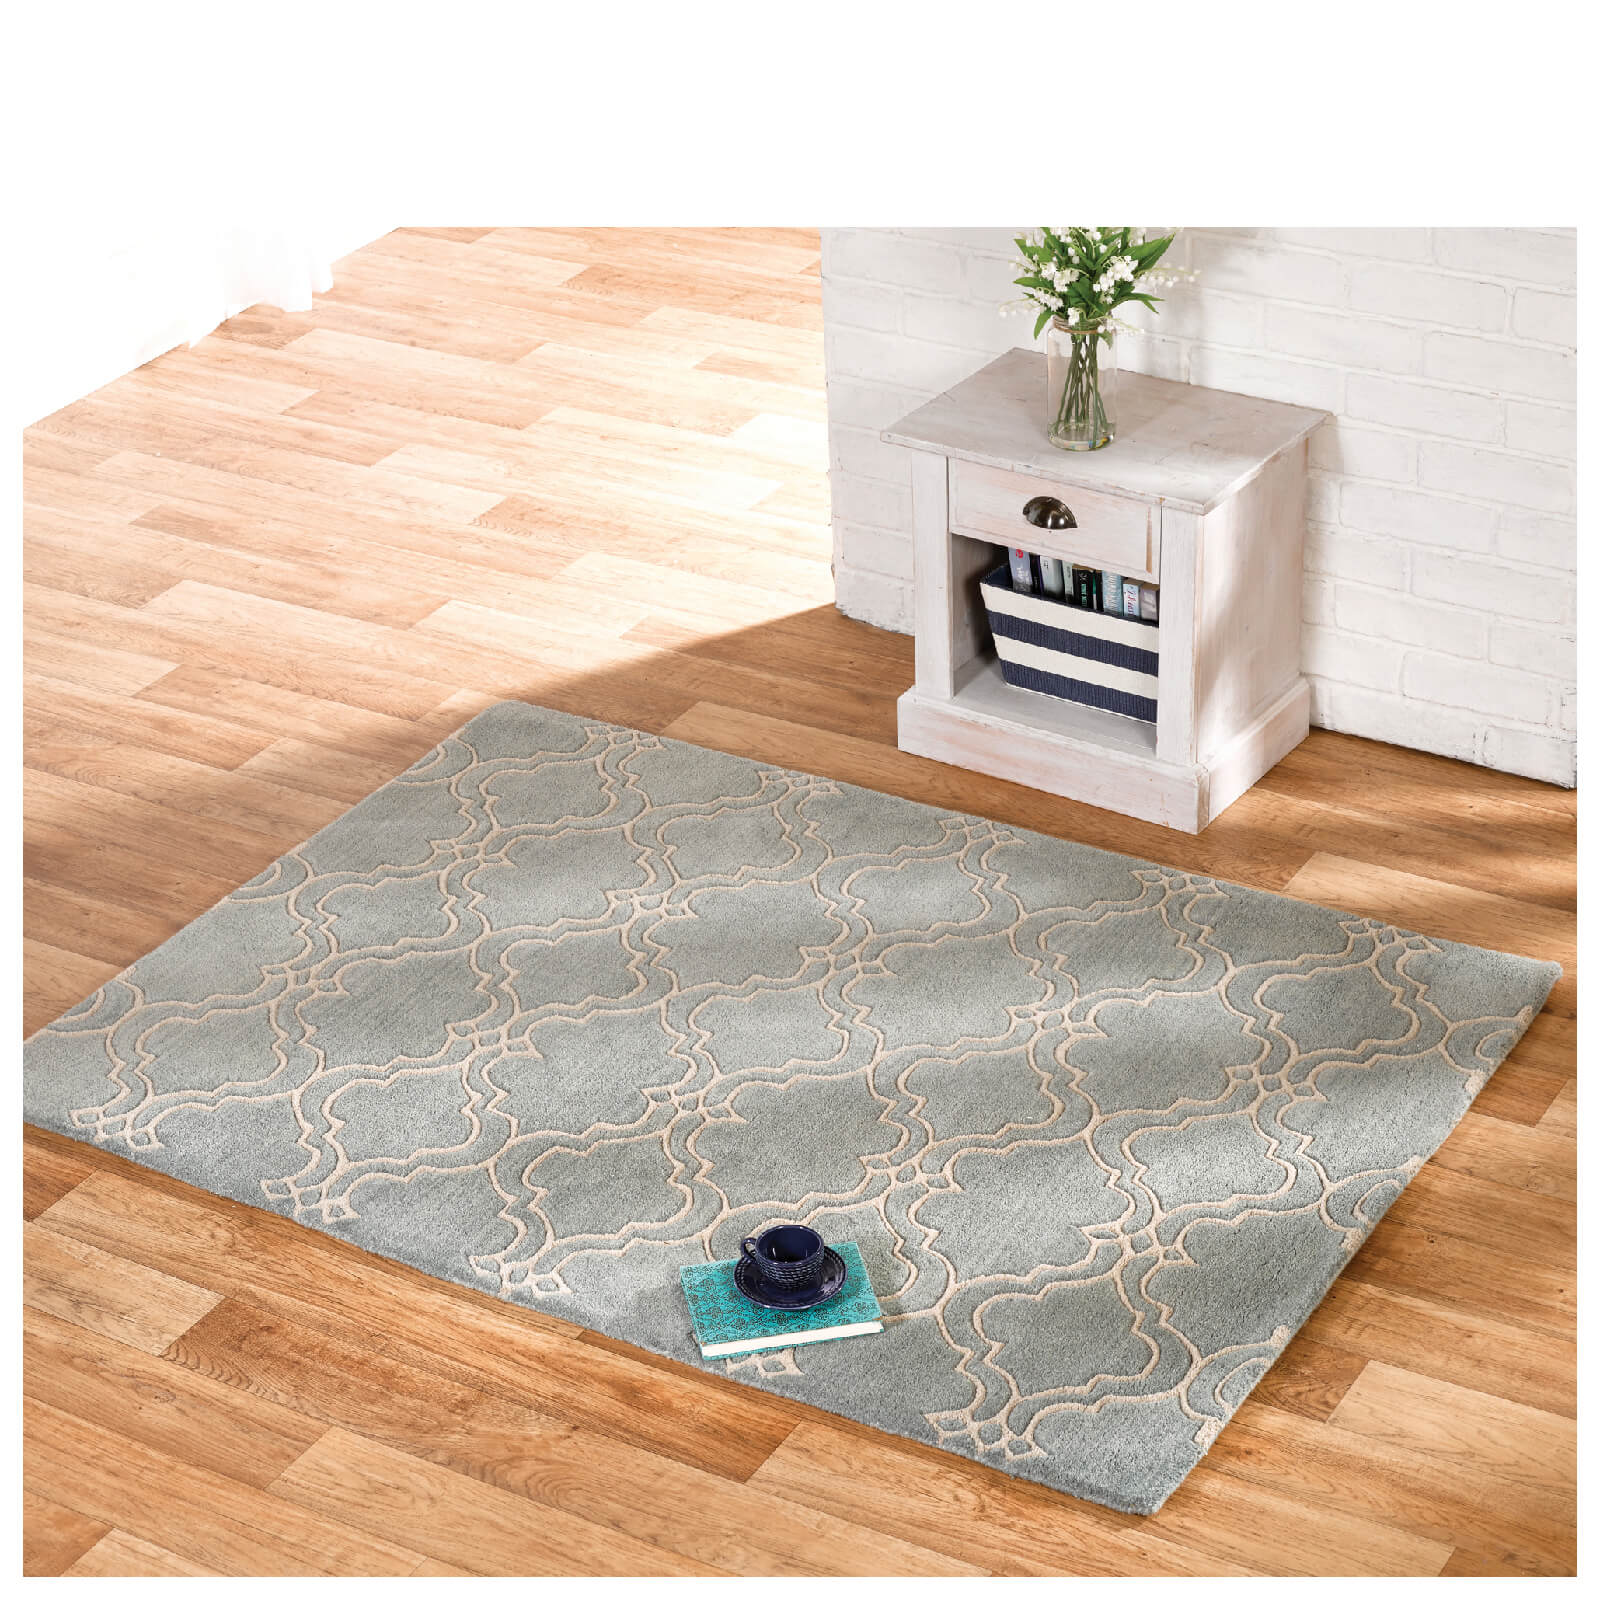 Flair Moorish Casablanca Rug - Duck Egg (200X290)